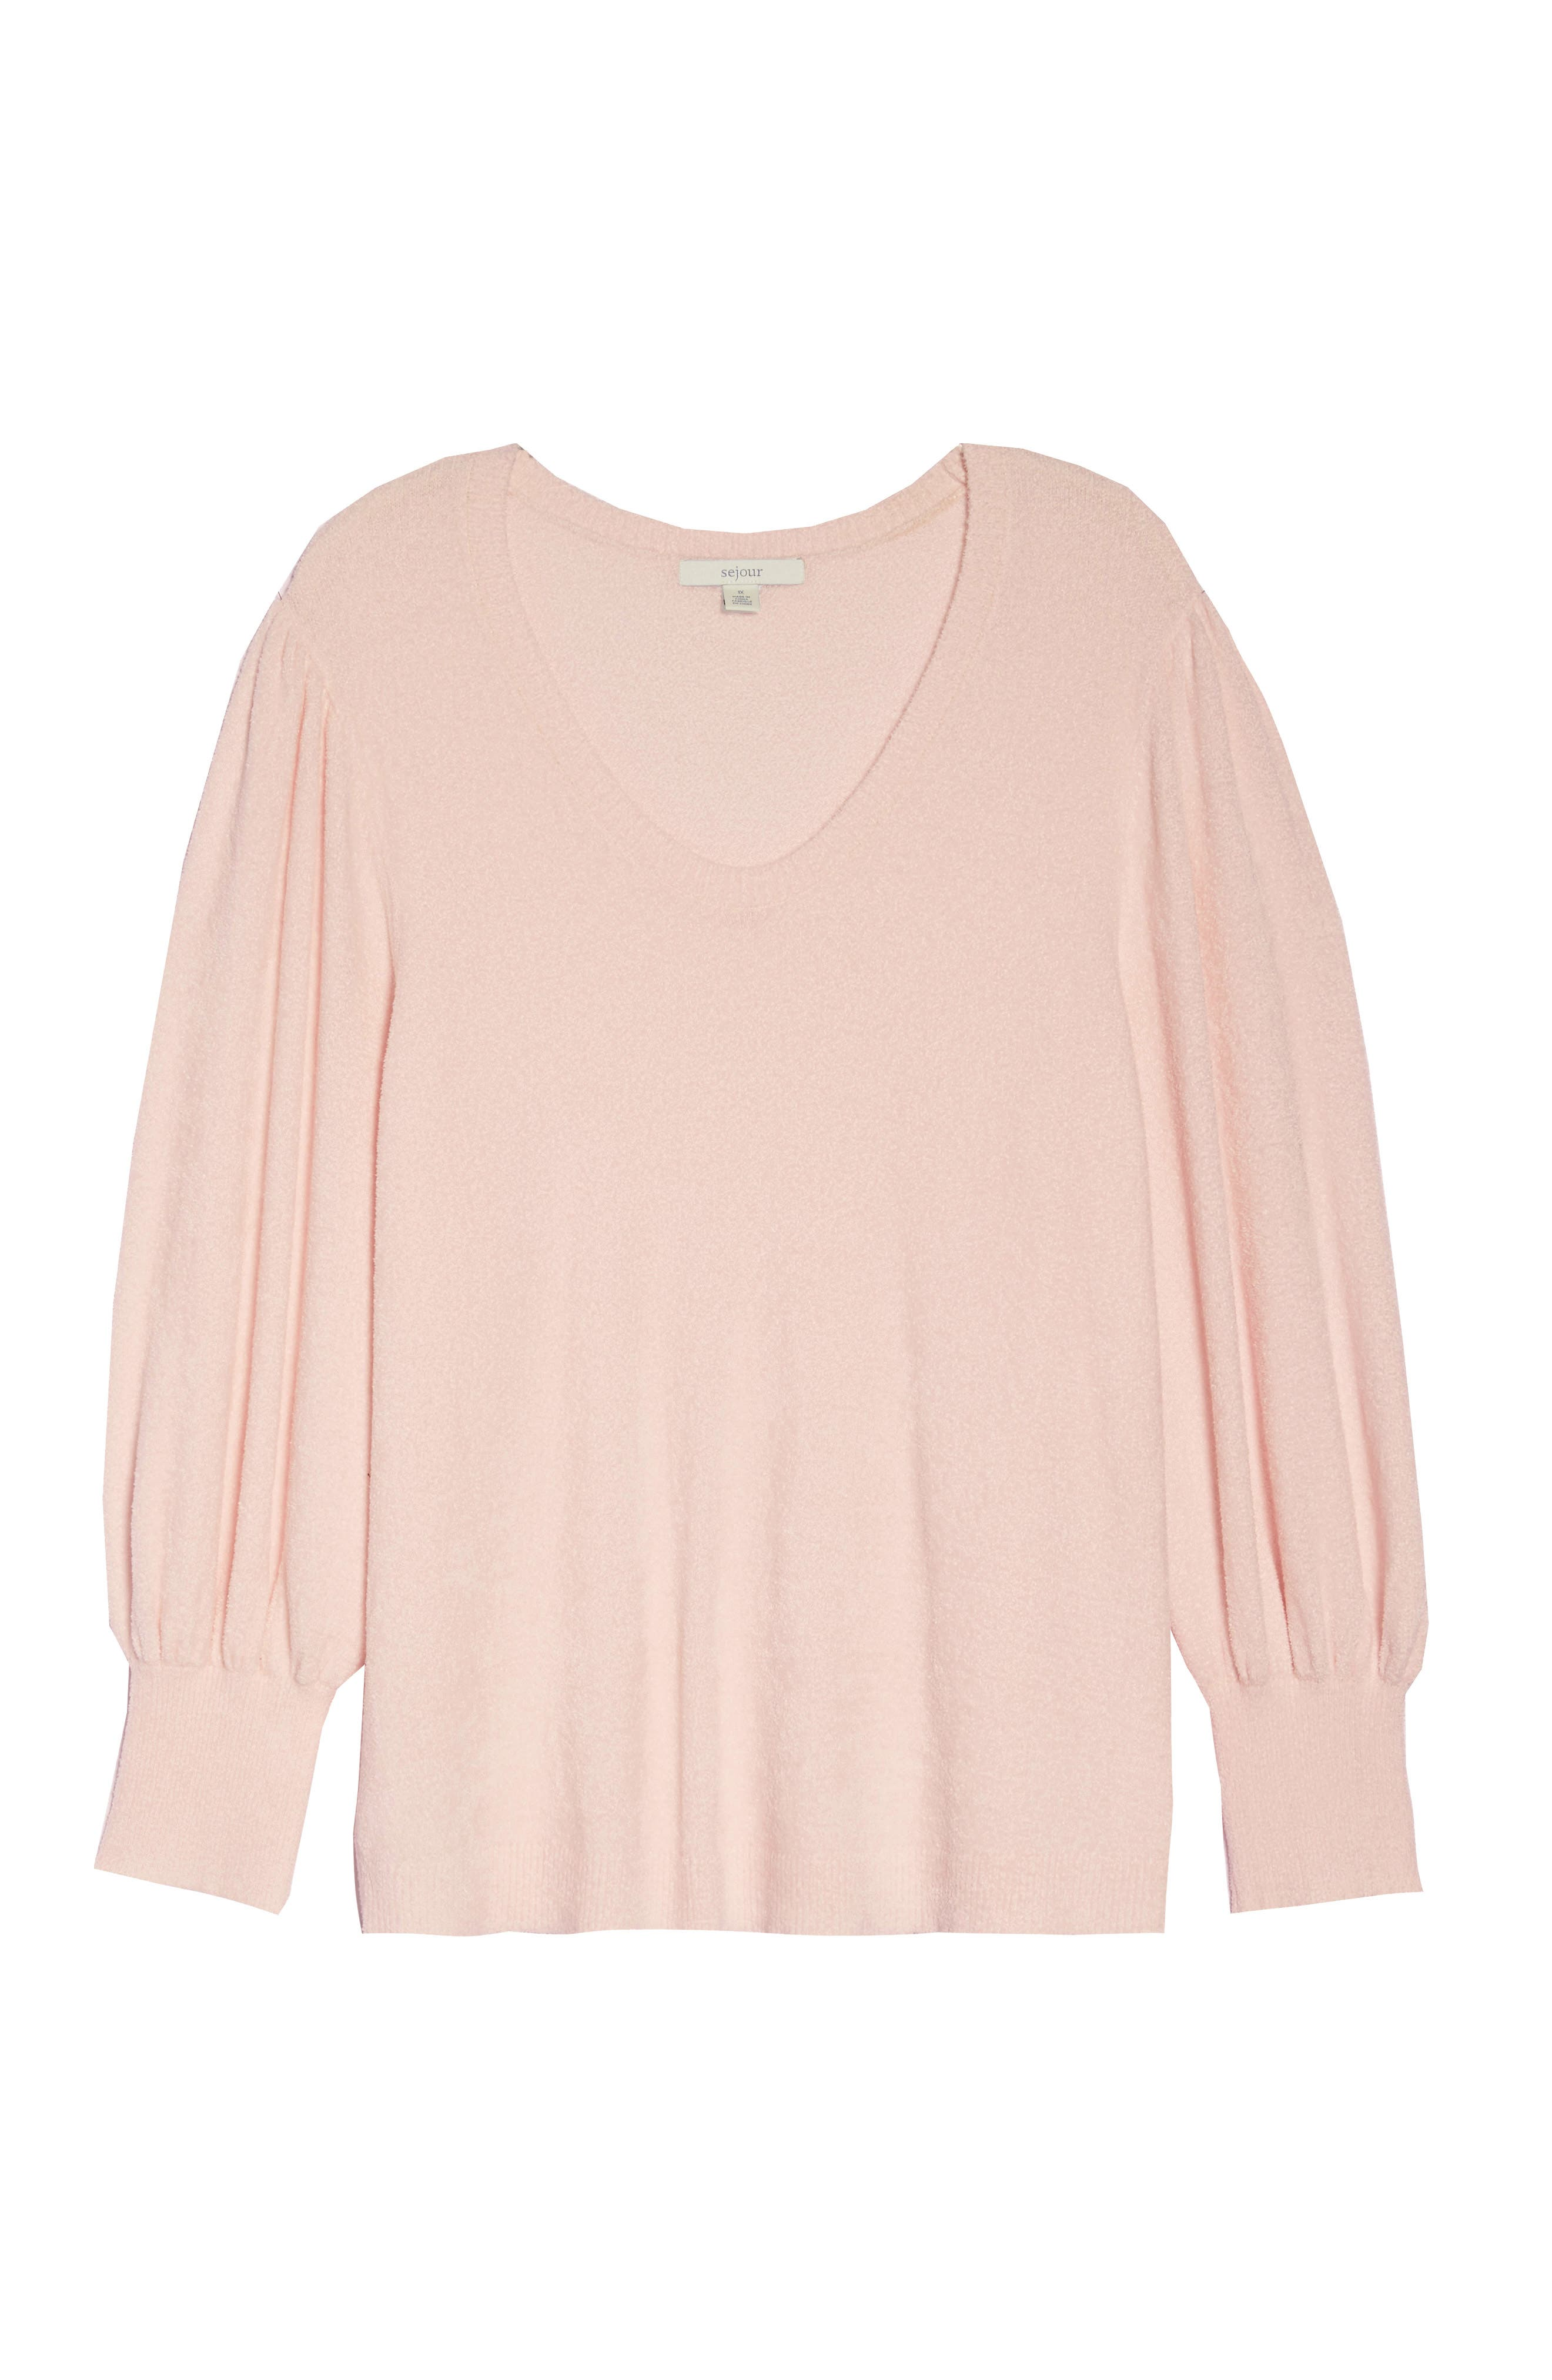 Puff Sleeve Sweater,                             Alternate thumbnail 6, color,                             PINK HERO